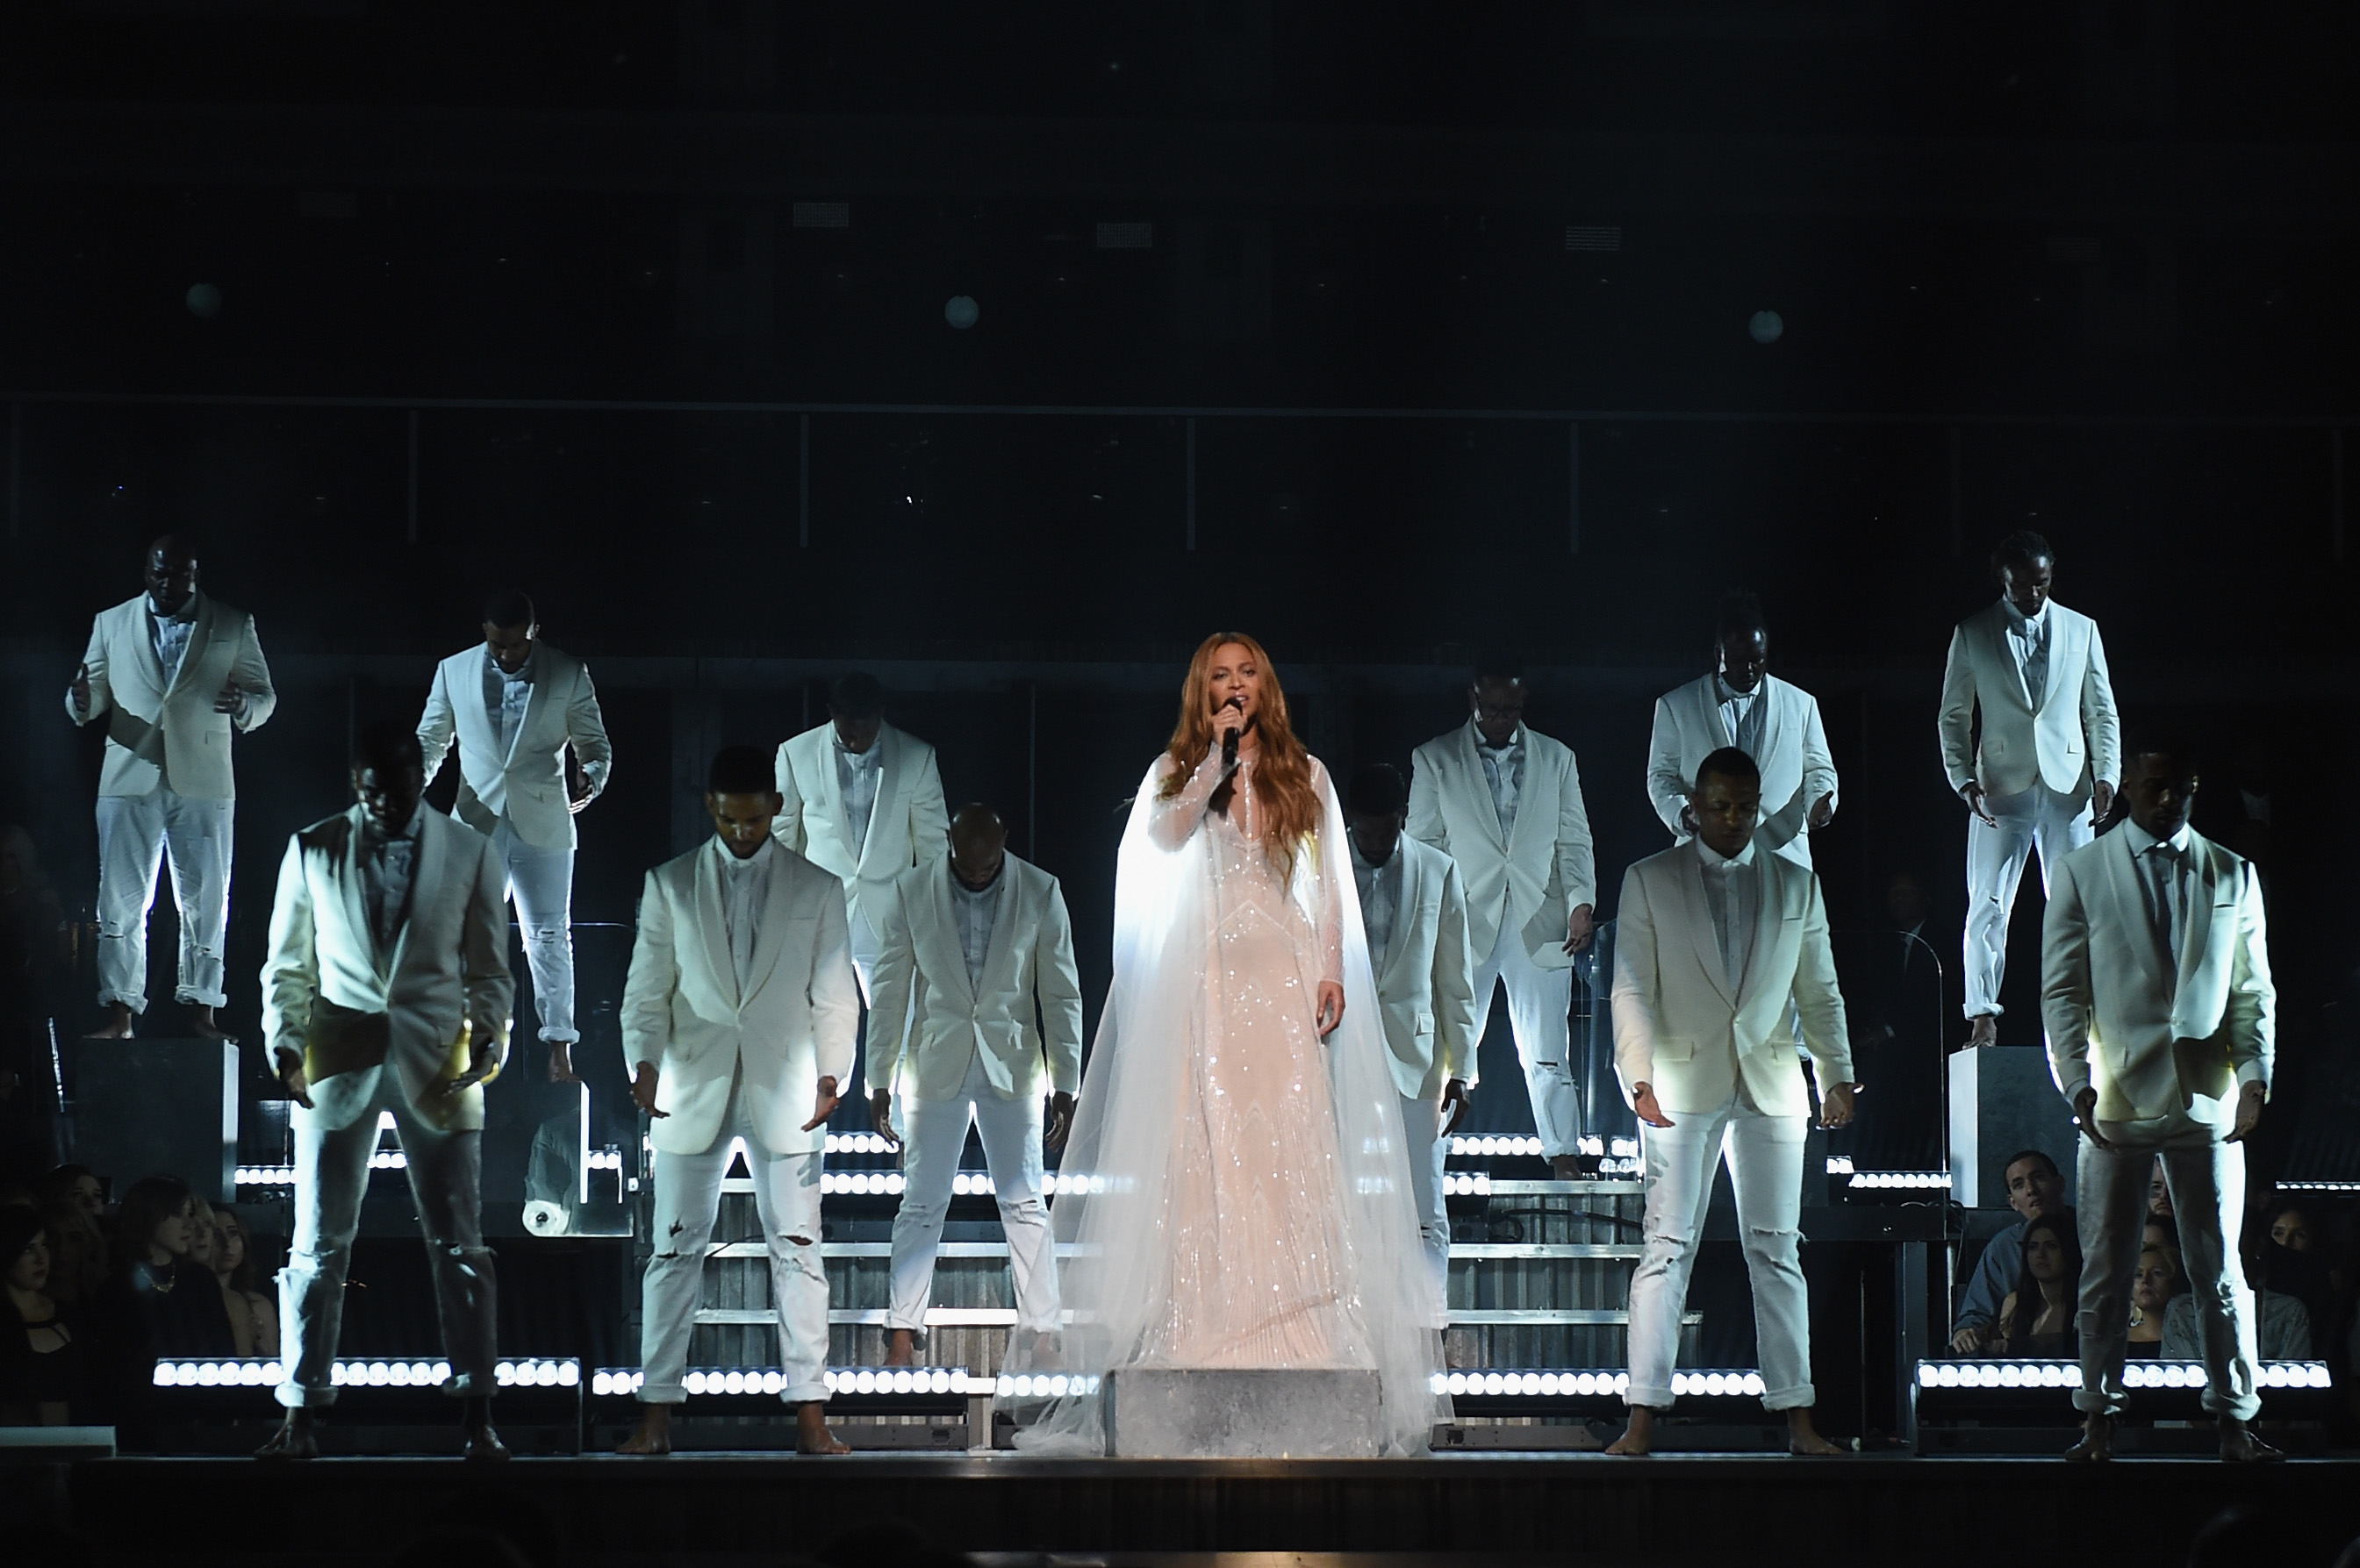 Recording Artist Beyonce performs onstage during The 57th Annual GRAMMY Awards at the STAPLES Center on February 8, 2015 in Los Angeles, California.